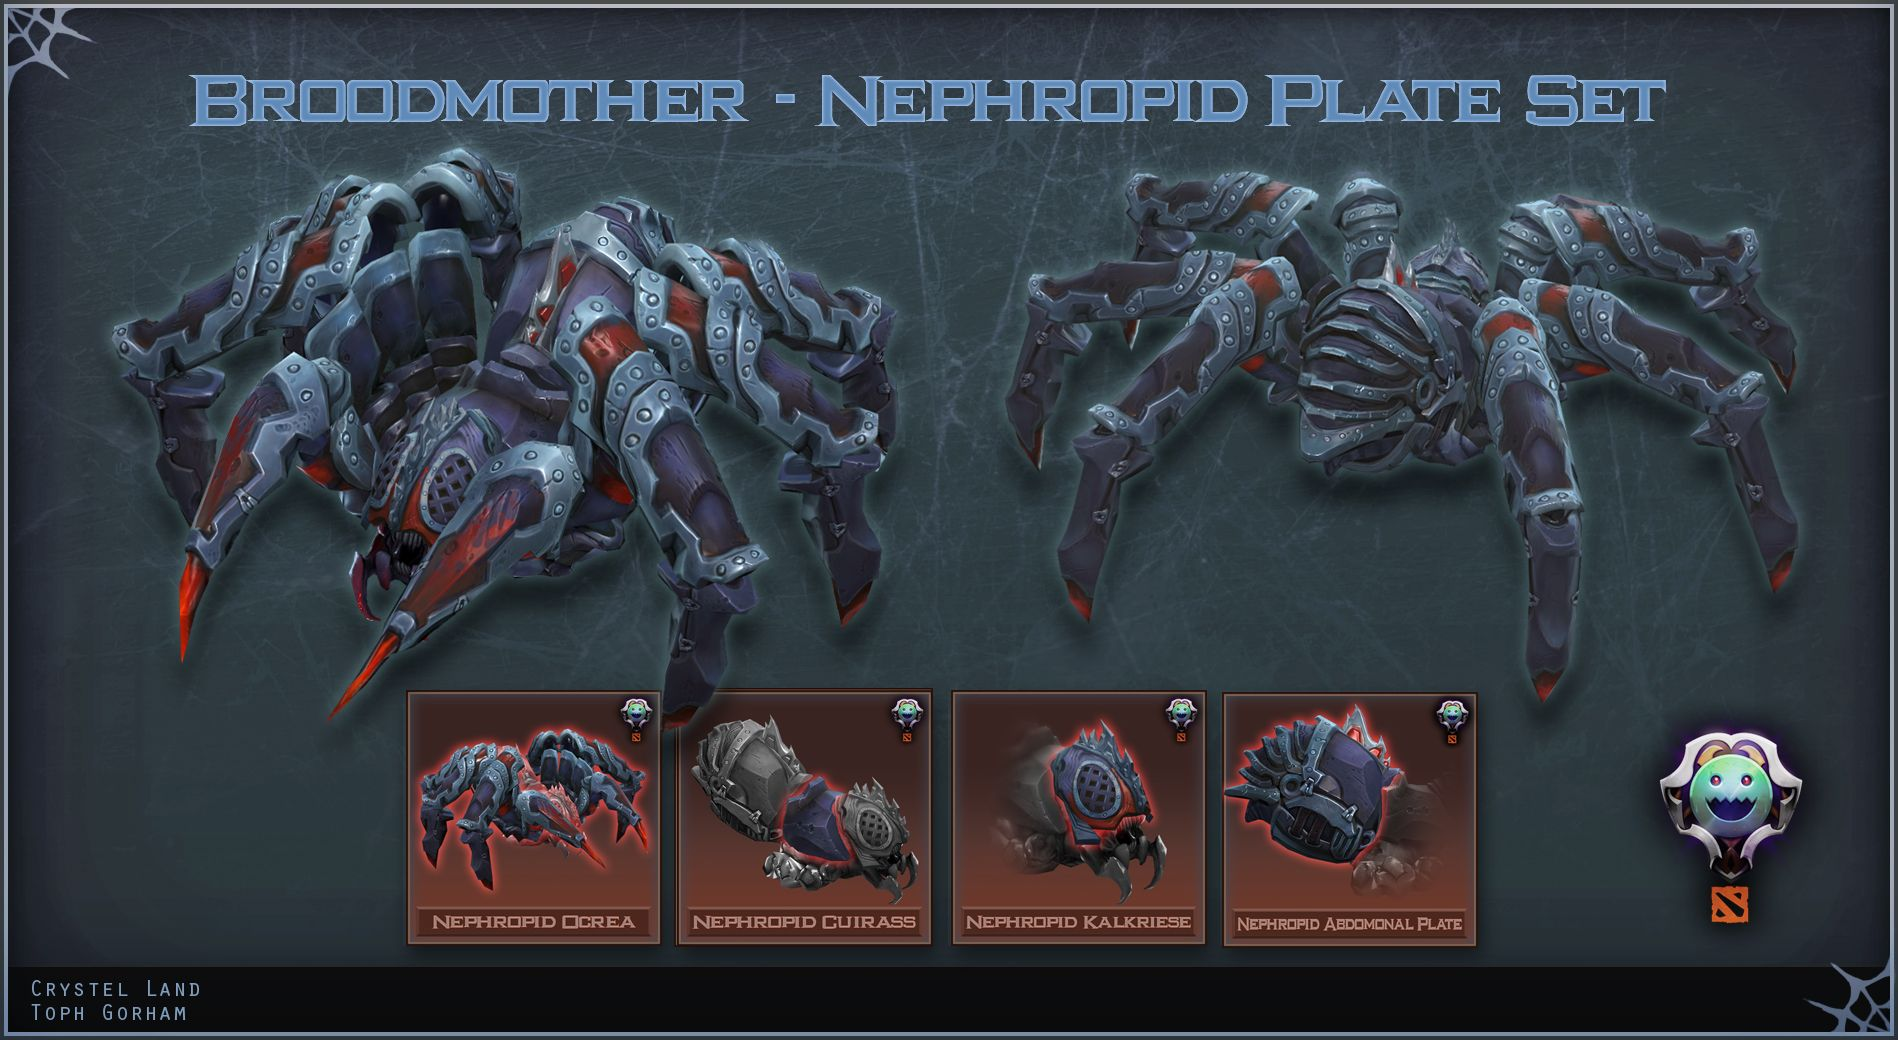 broodmother dota 2 sets artwork i want this dota 2 pinterest